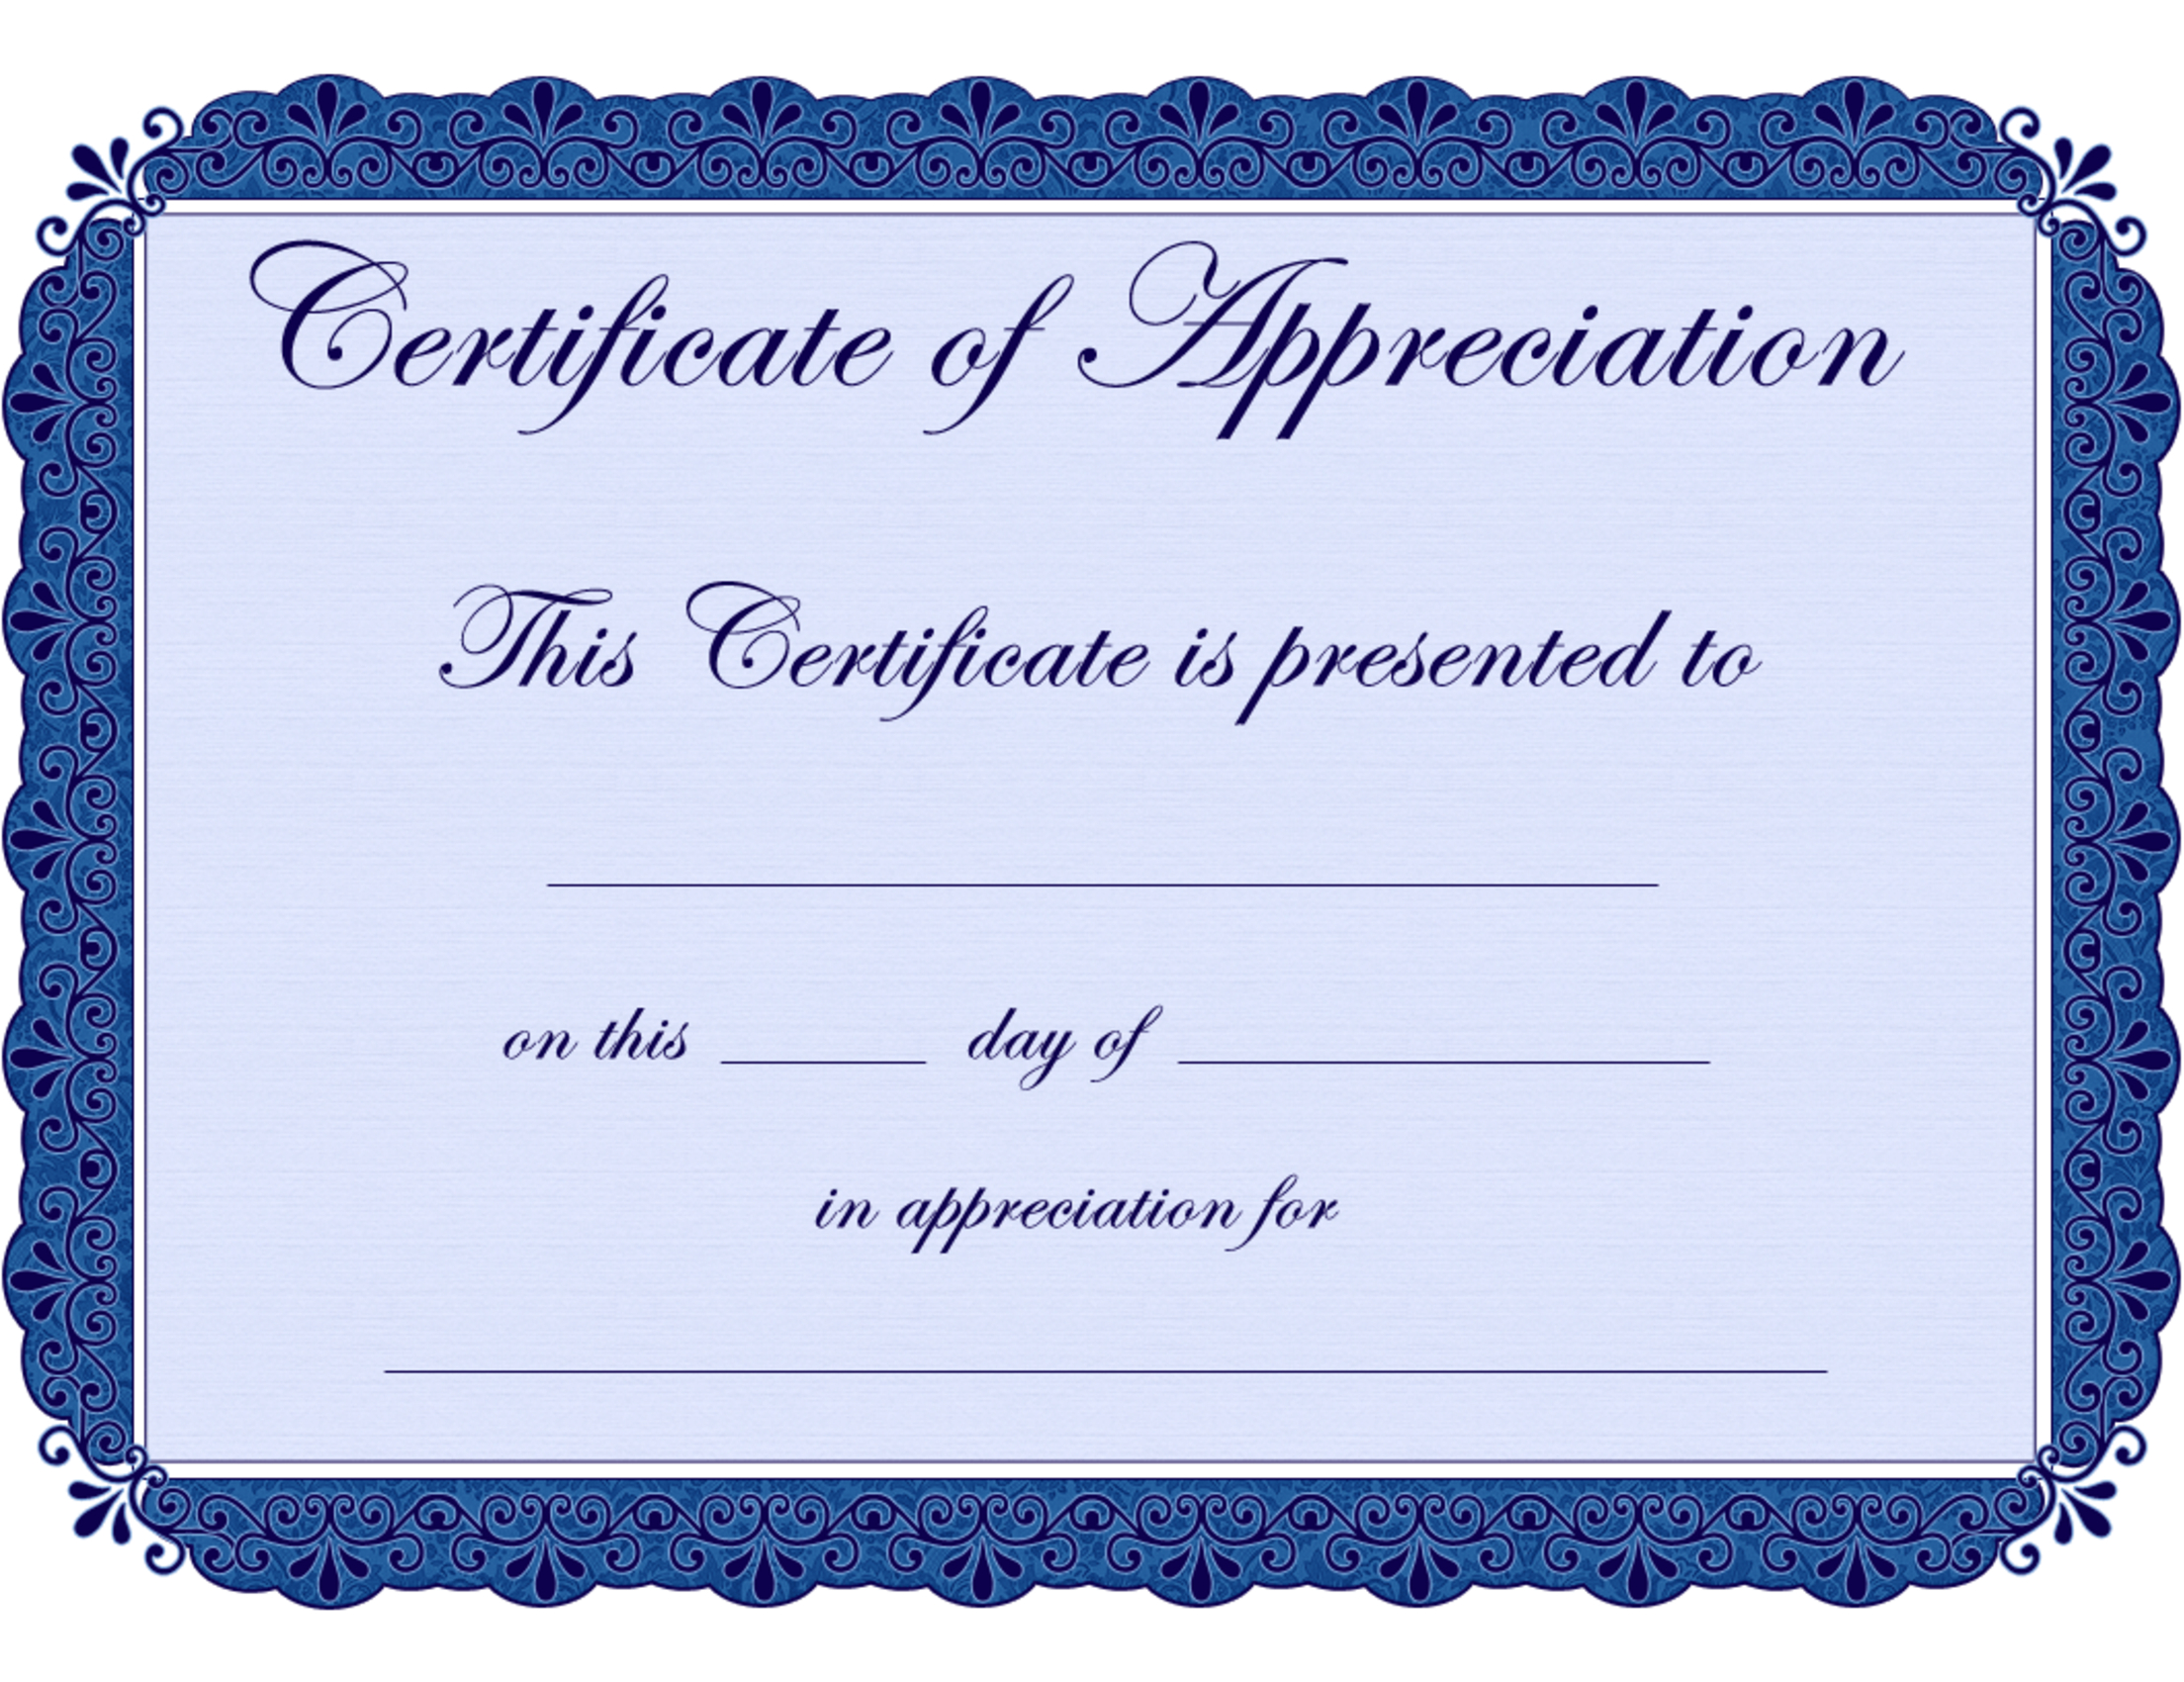 Free Printable Certificates Certificate Of Appreciation Certificate - Free Printable Certificates Of Achievement